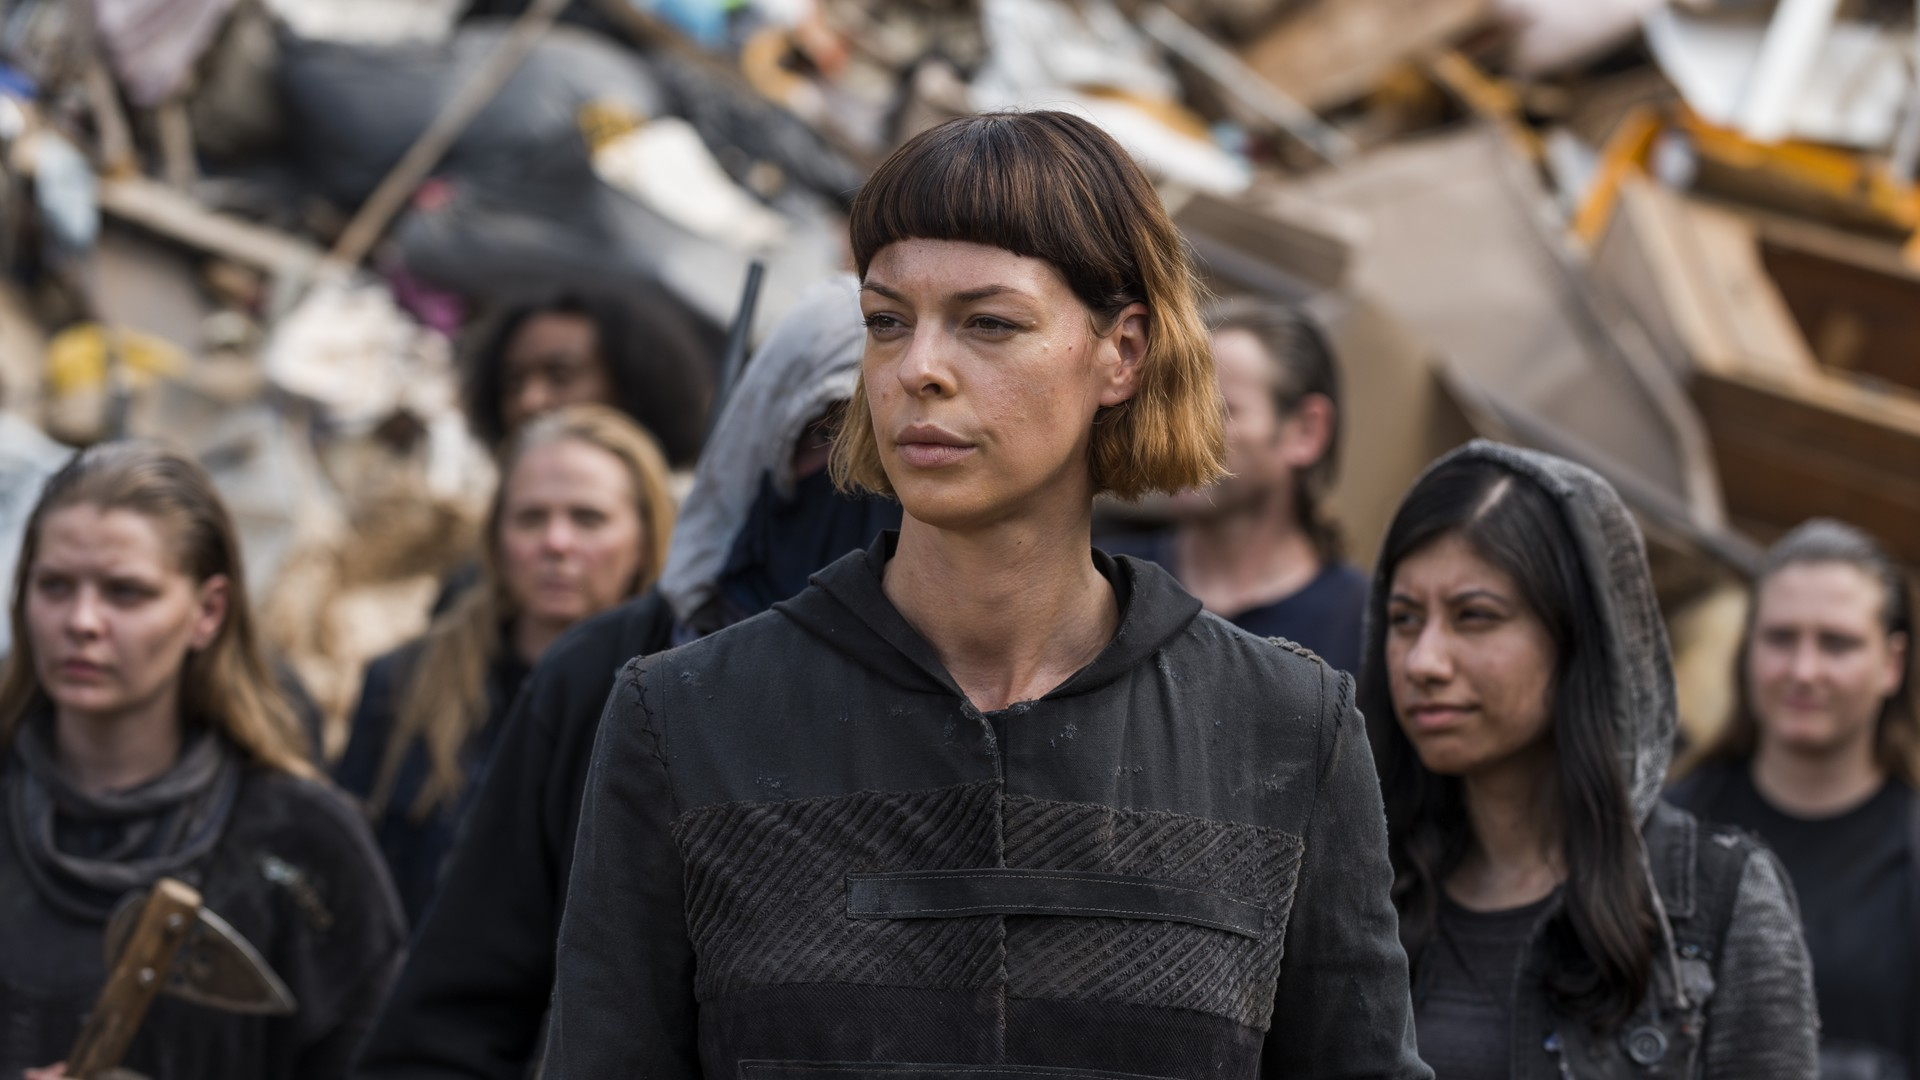 Image de Jadis dans l'épisode 10 de la saison 7 de The Walking Dead